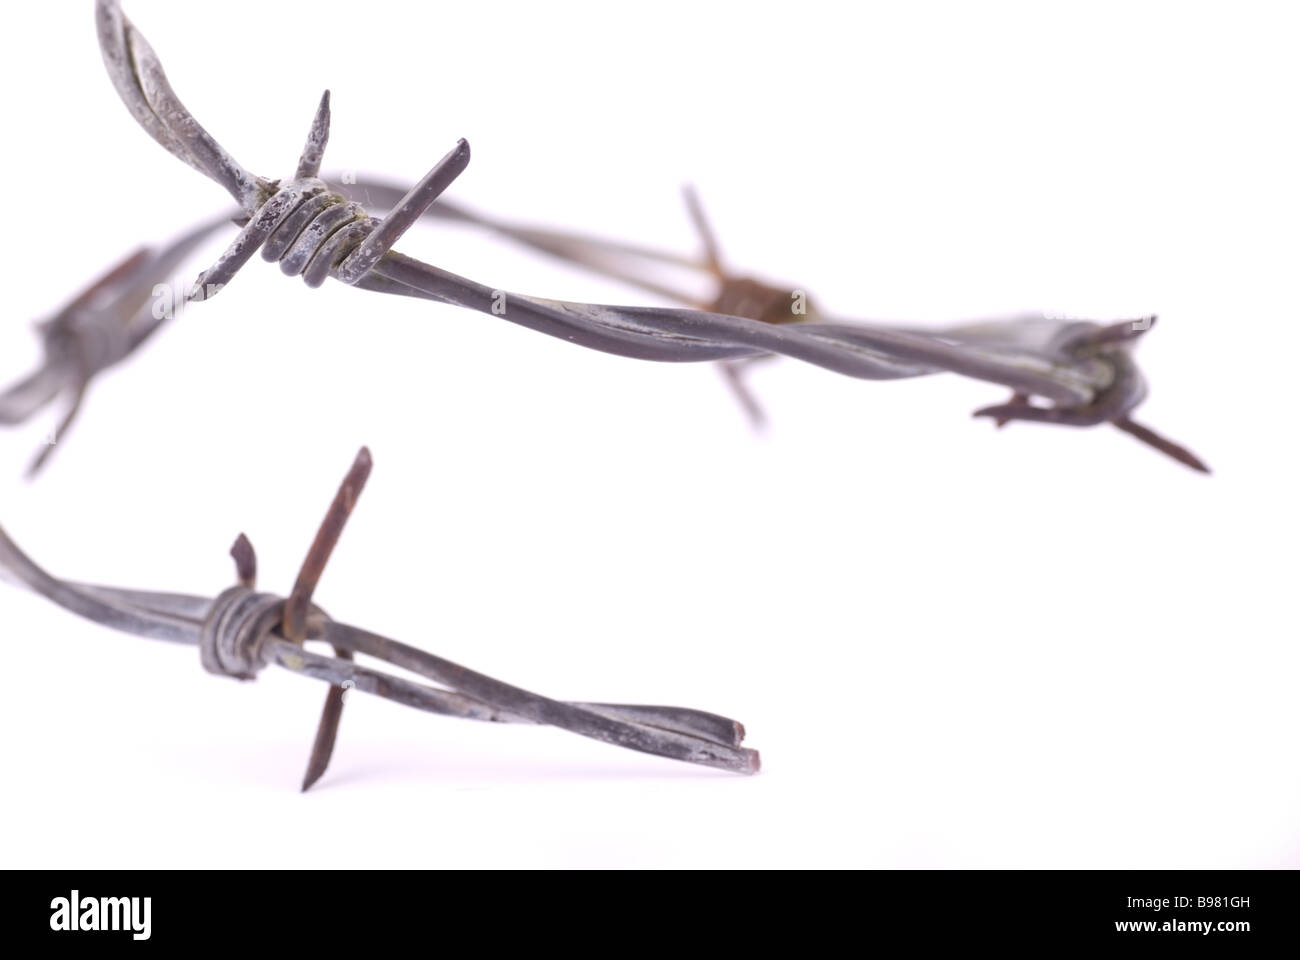 Barb wire cutout on a white background - Stock Image